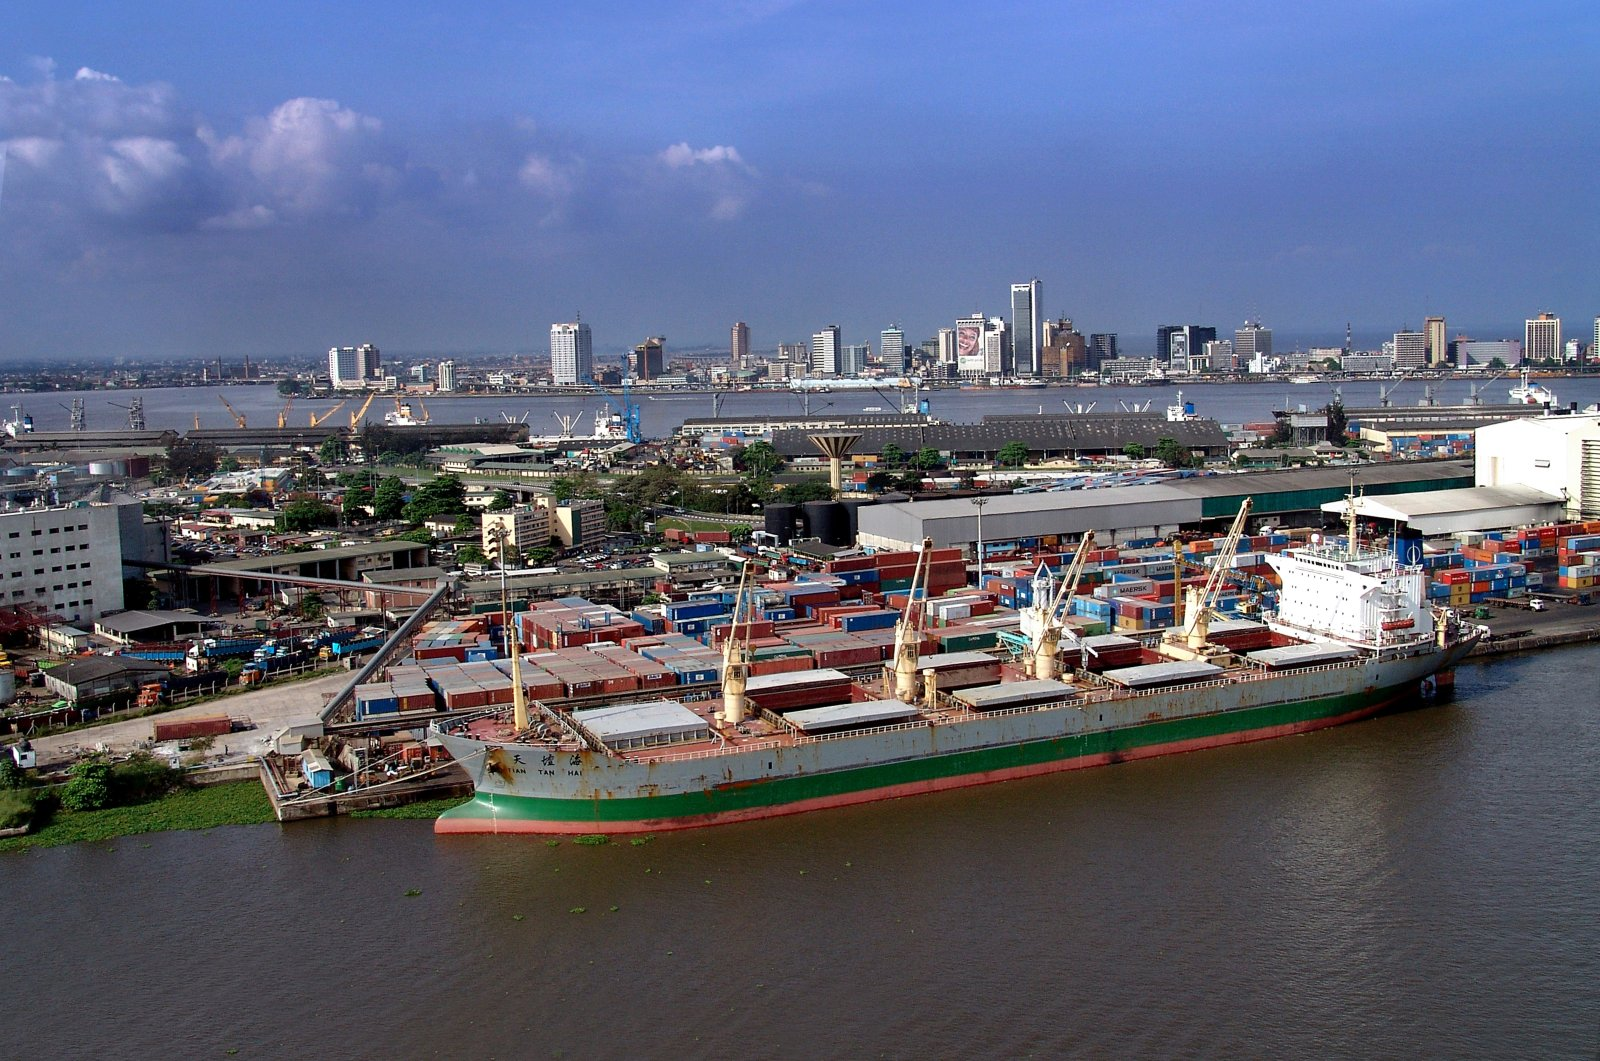 A port complex in the province of Lagos, Nigeria, Sept. 11, 2020. (Photo by Getty Images)